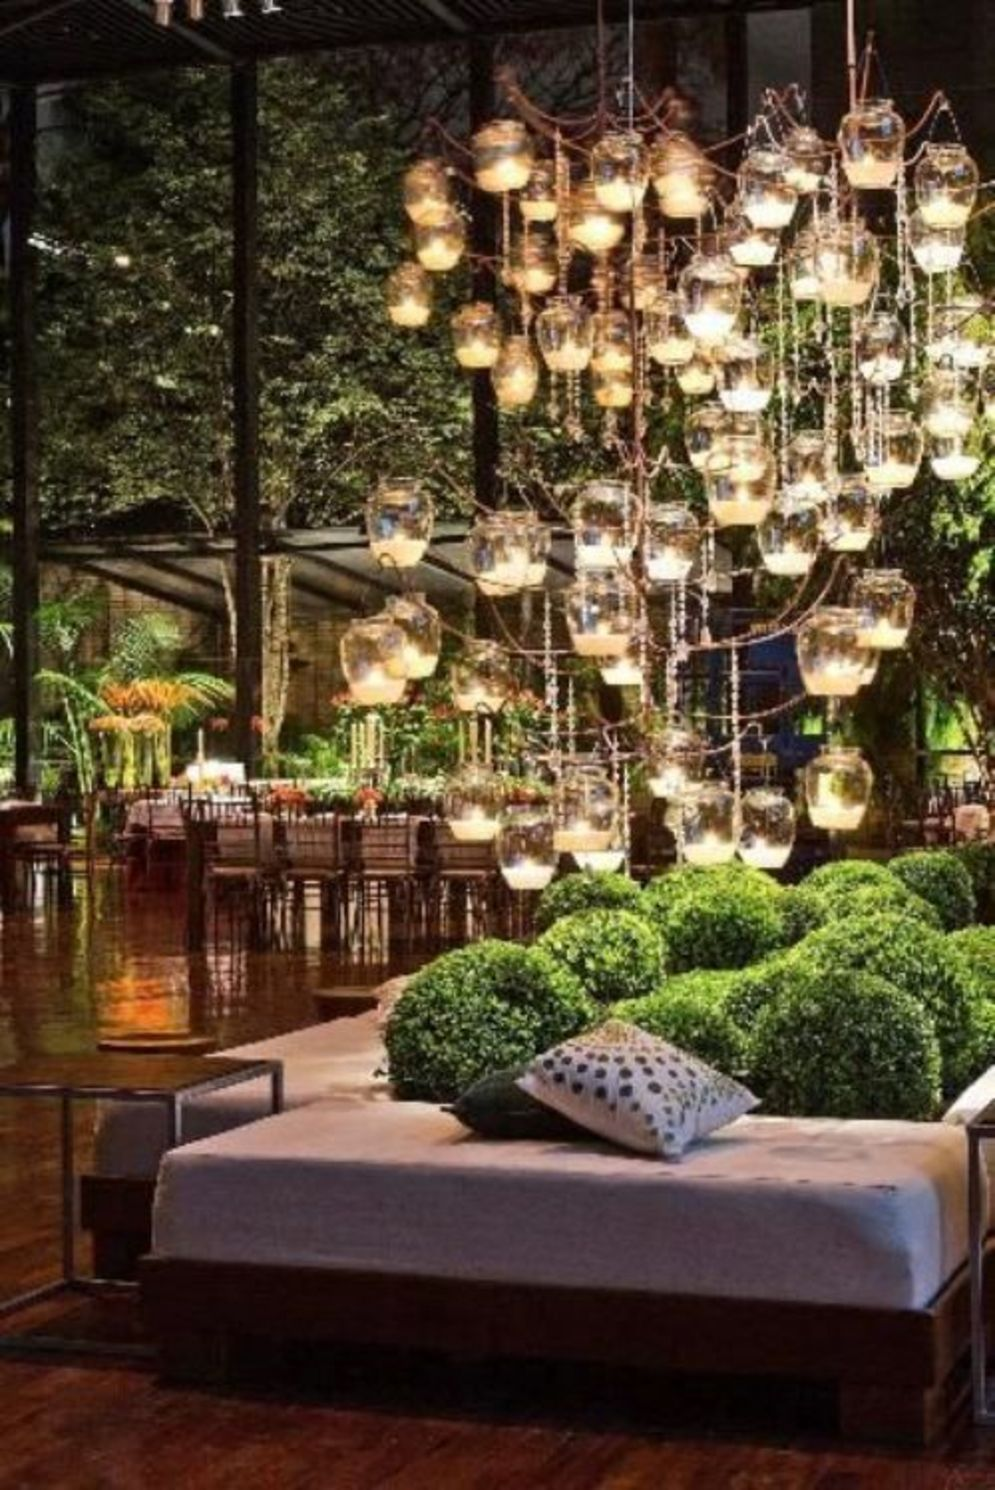 Beautiful garden lighting ideas with ground level ambient light giving luxurious resorts look Image 25